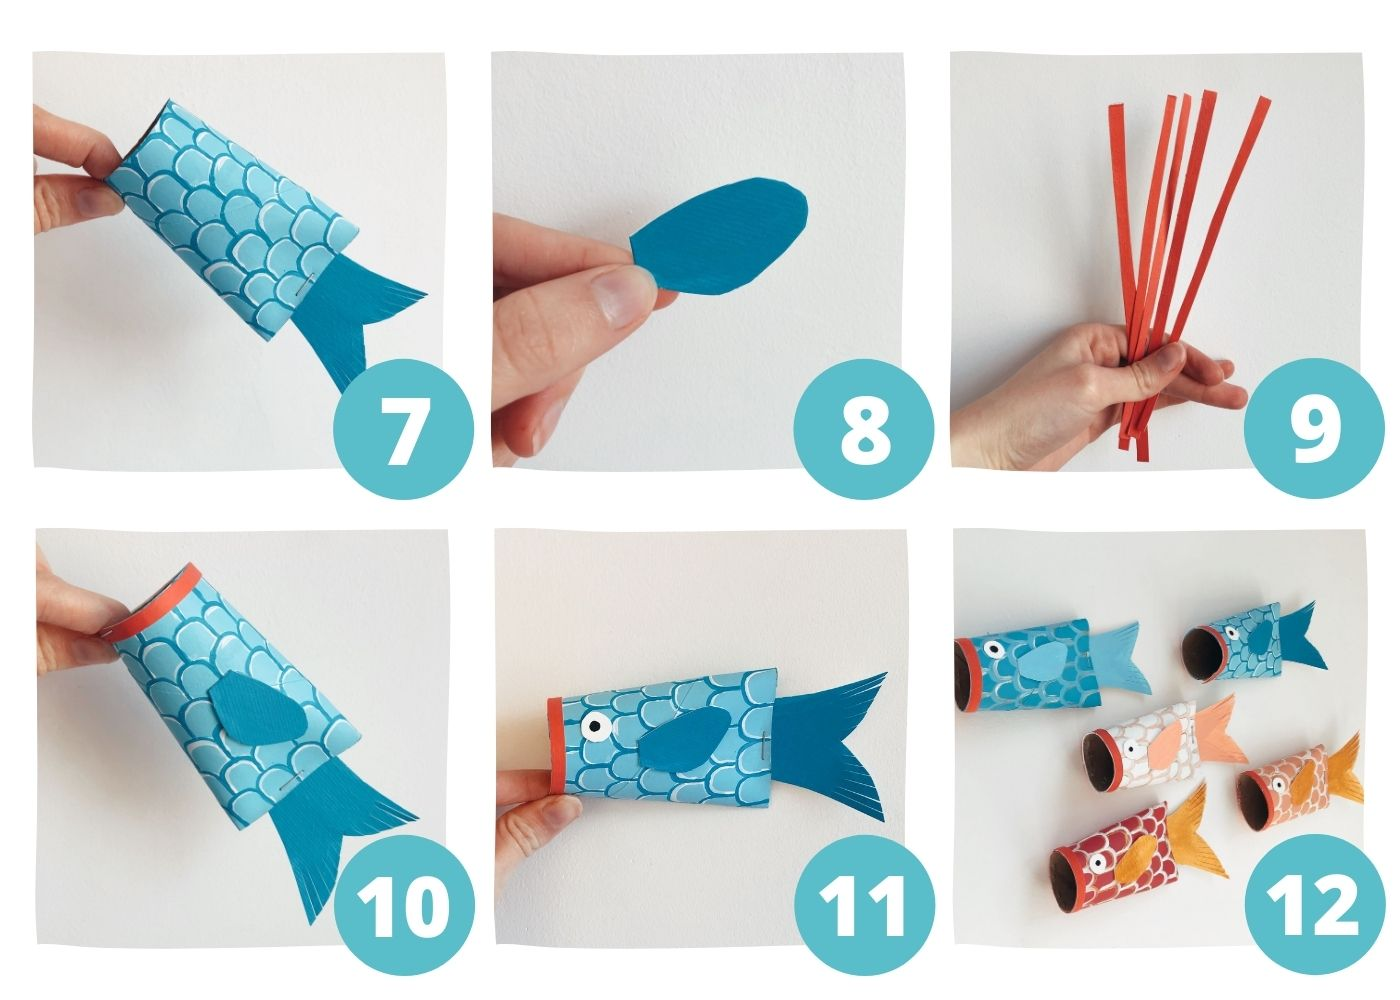 Koi Fish Toilet Paper Roll Crafts Steps7-12